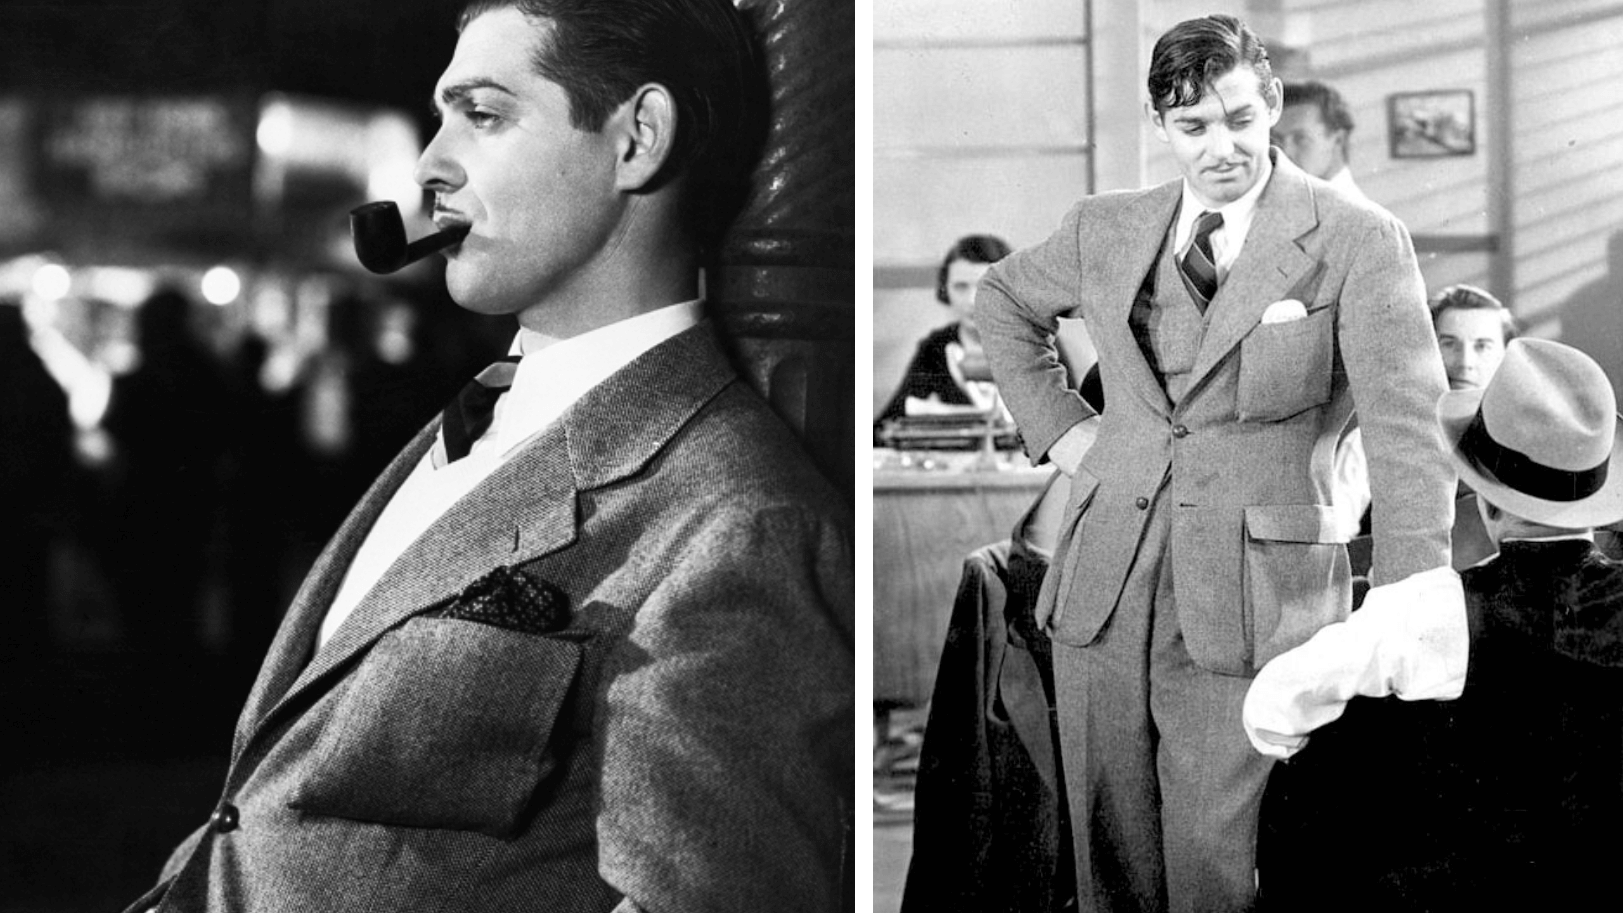 suits-on-film-clark-gable